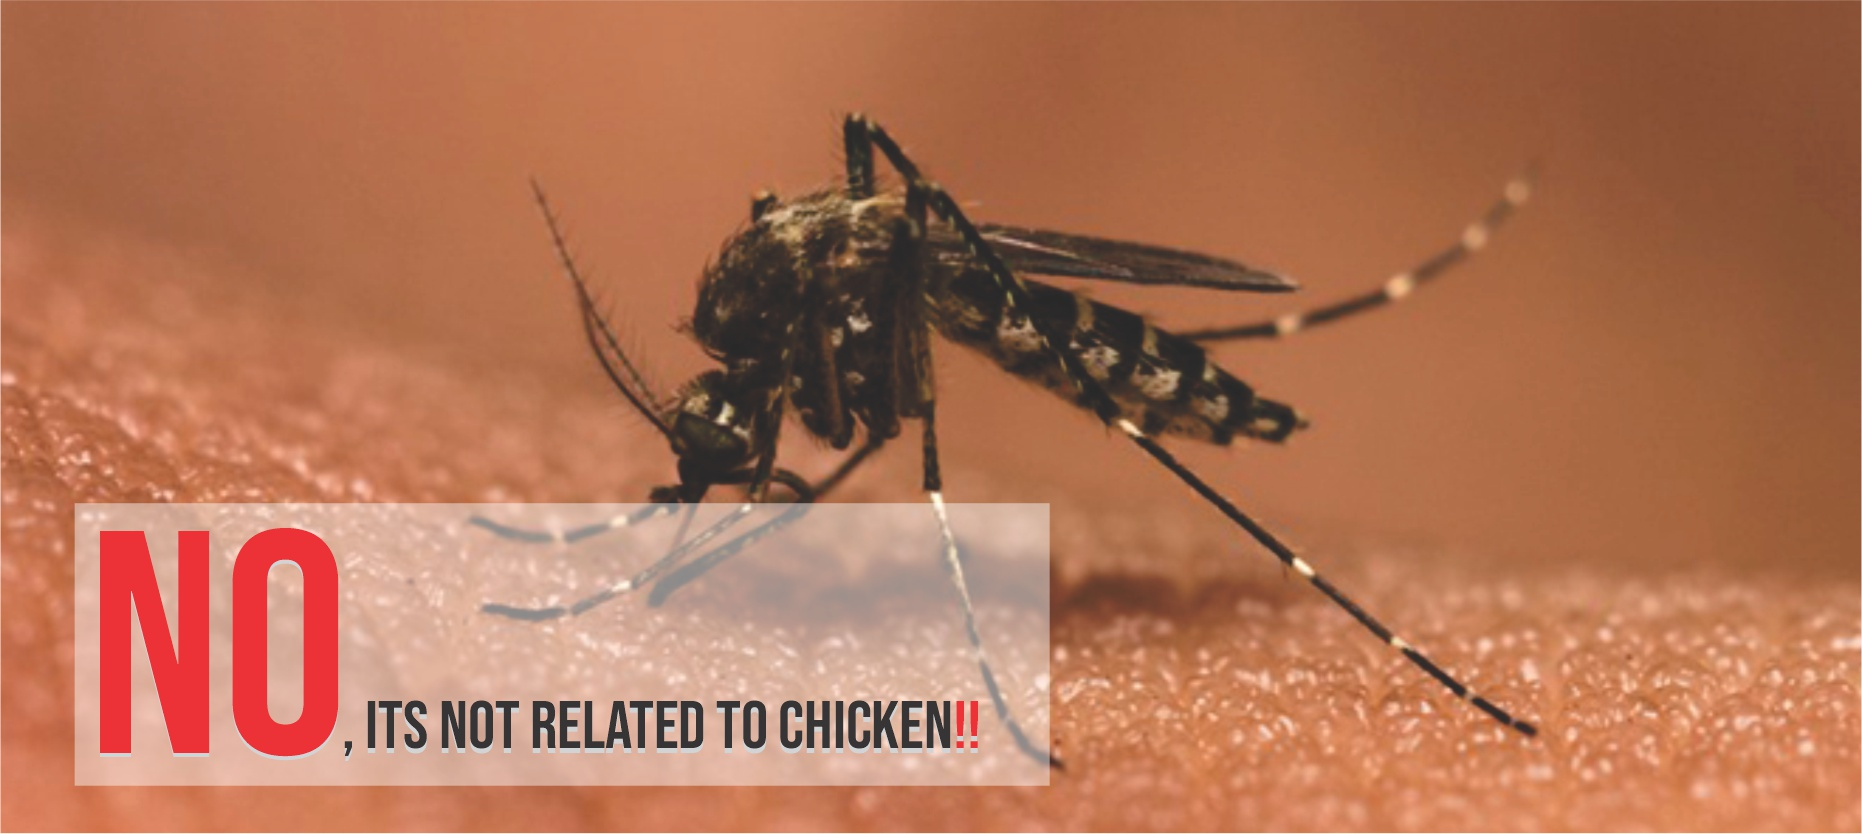 Know All About Chikungunya